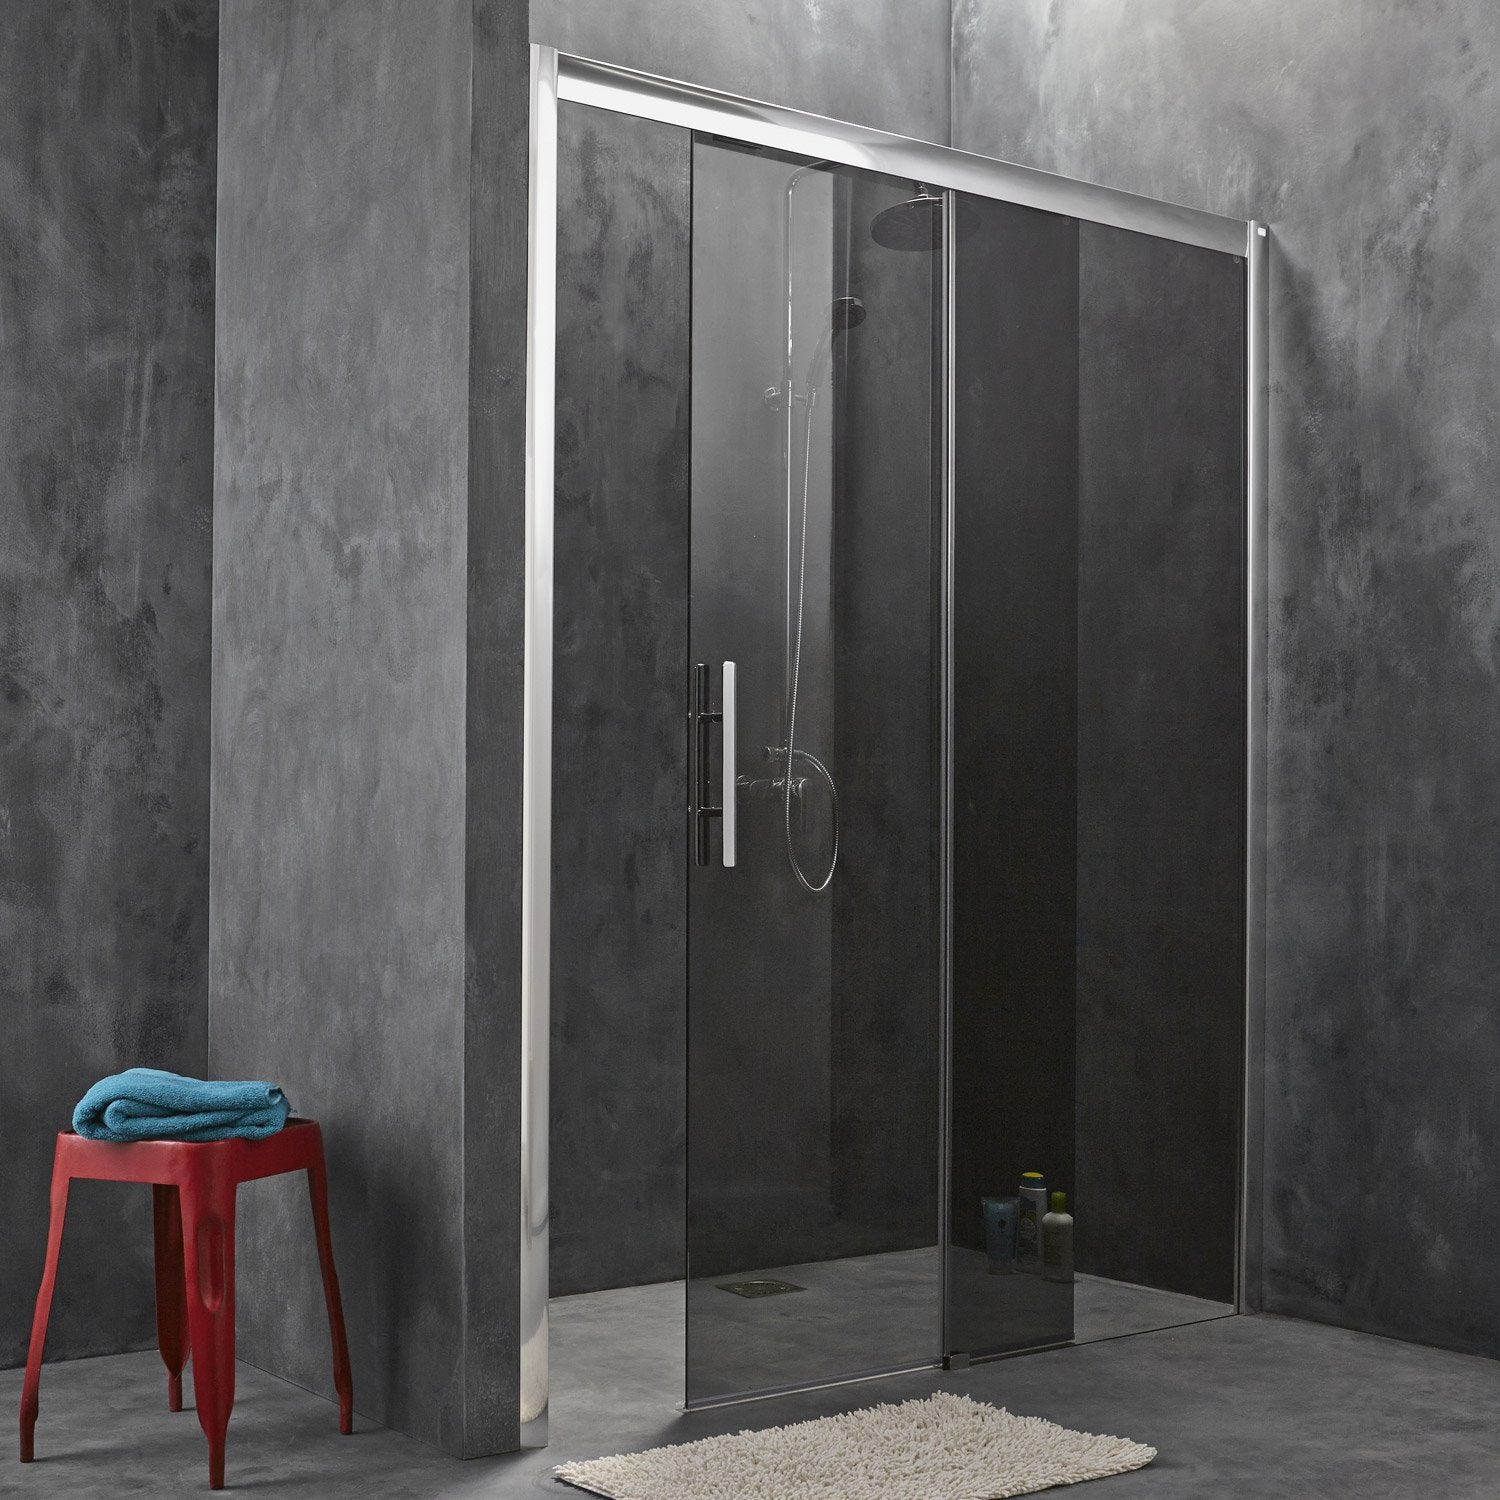 porte de douche coulissante 157 161 cm profil chrom. Black Bedroom Furniture Sets. Home Design Ideas